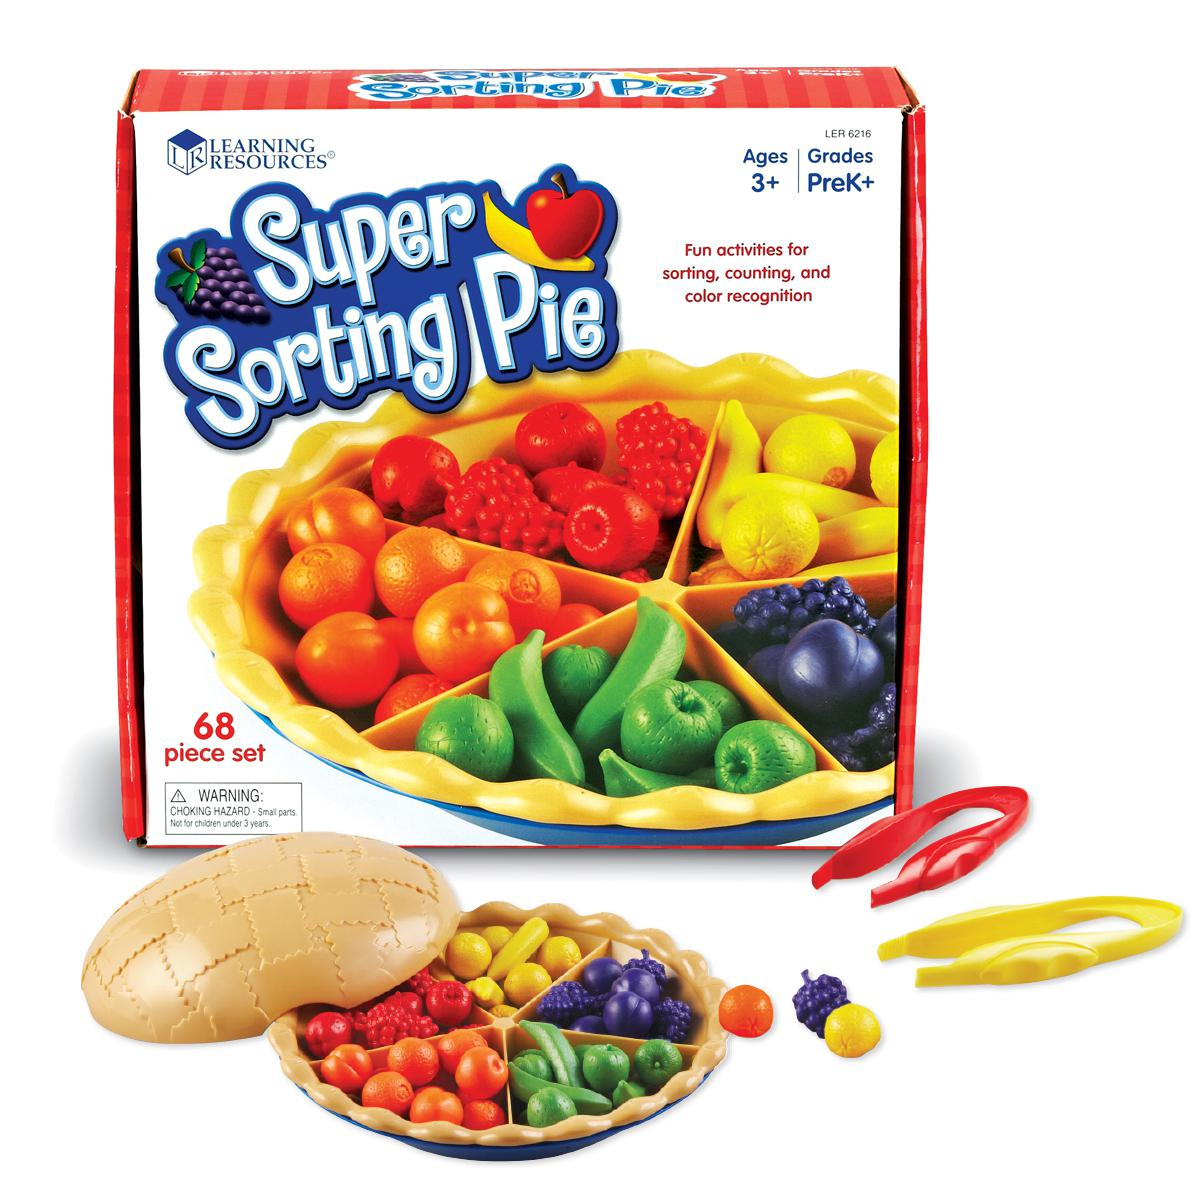 Super Sorting Pie